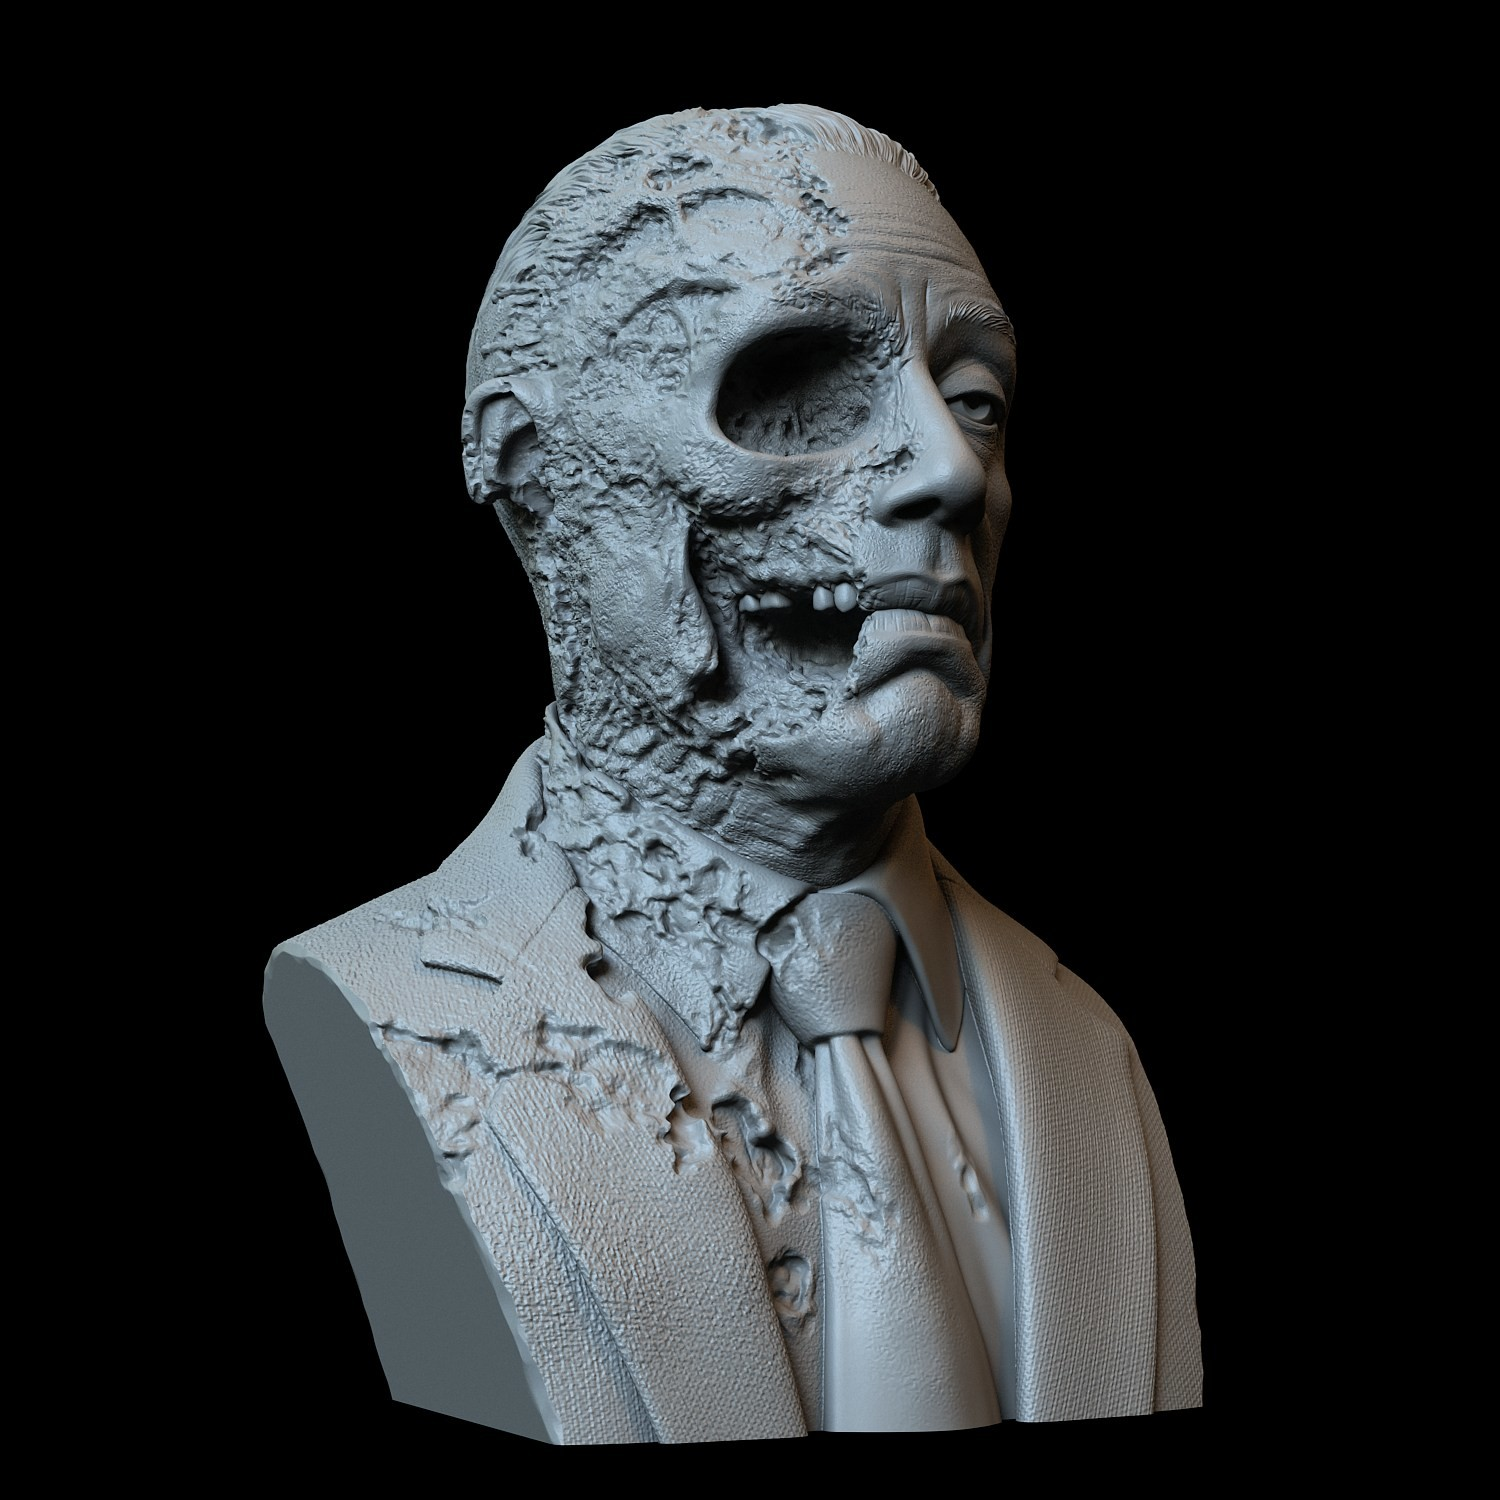 Artstation Gustavo Fring Face Off Version Giancarlo Esposito Breaking Bad 3d Printable Bust Artworks